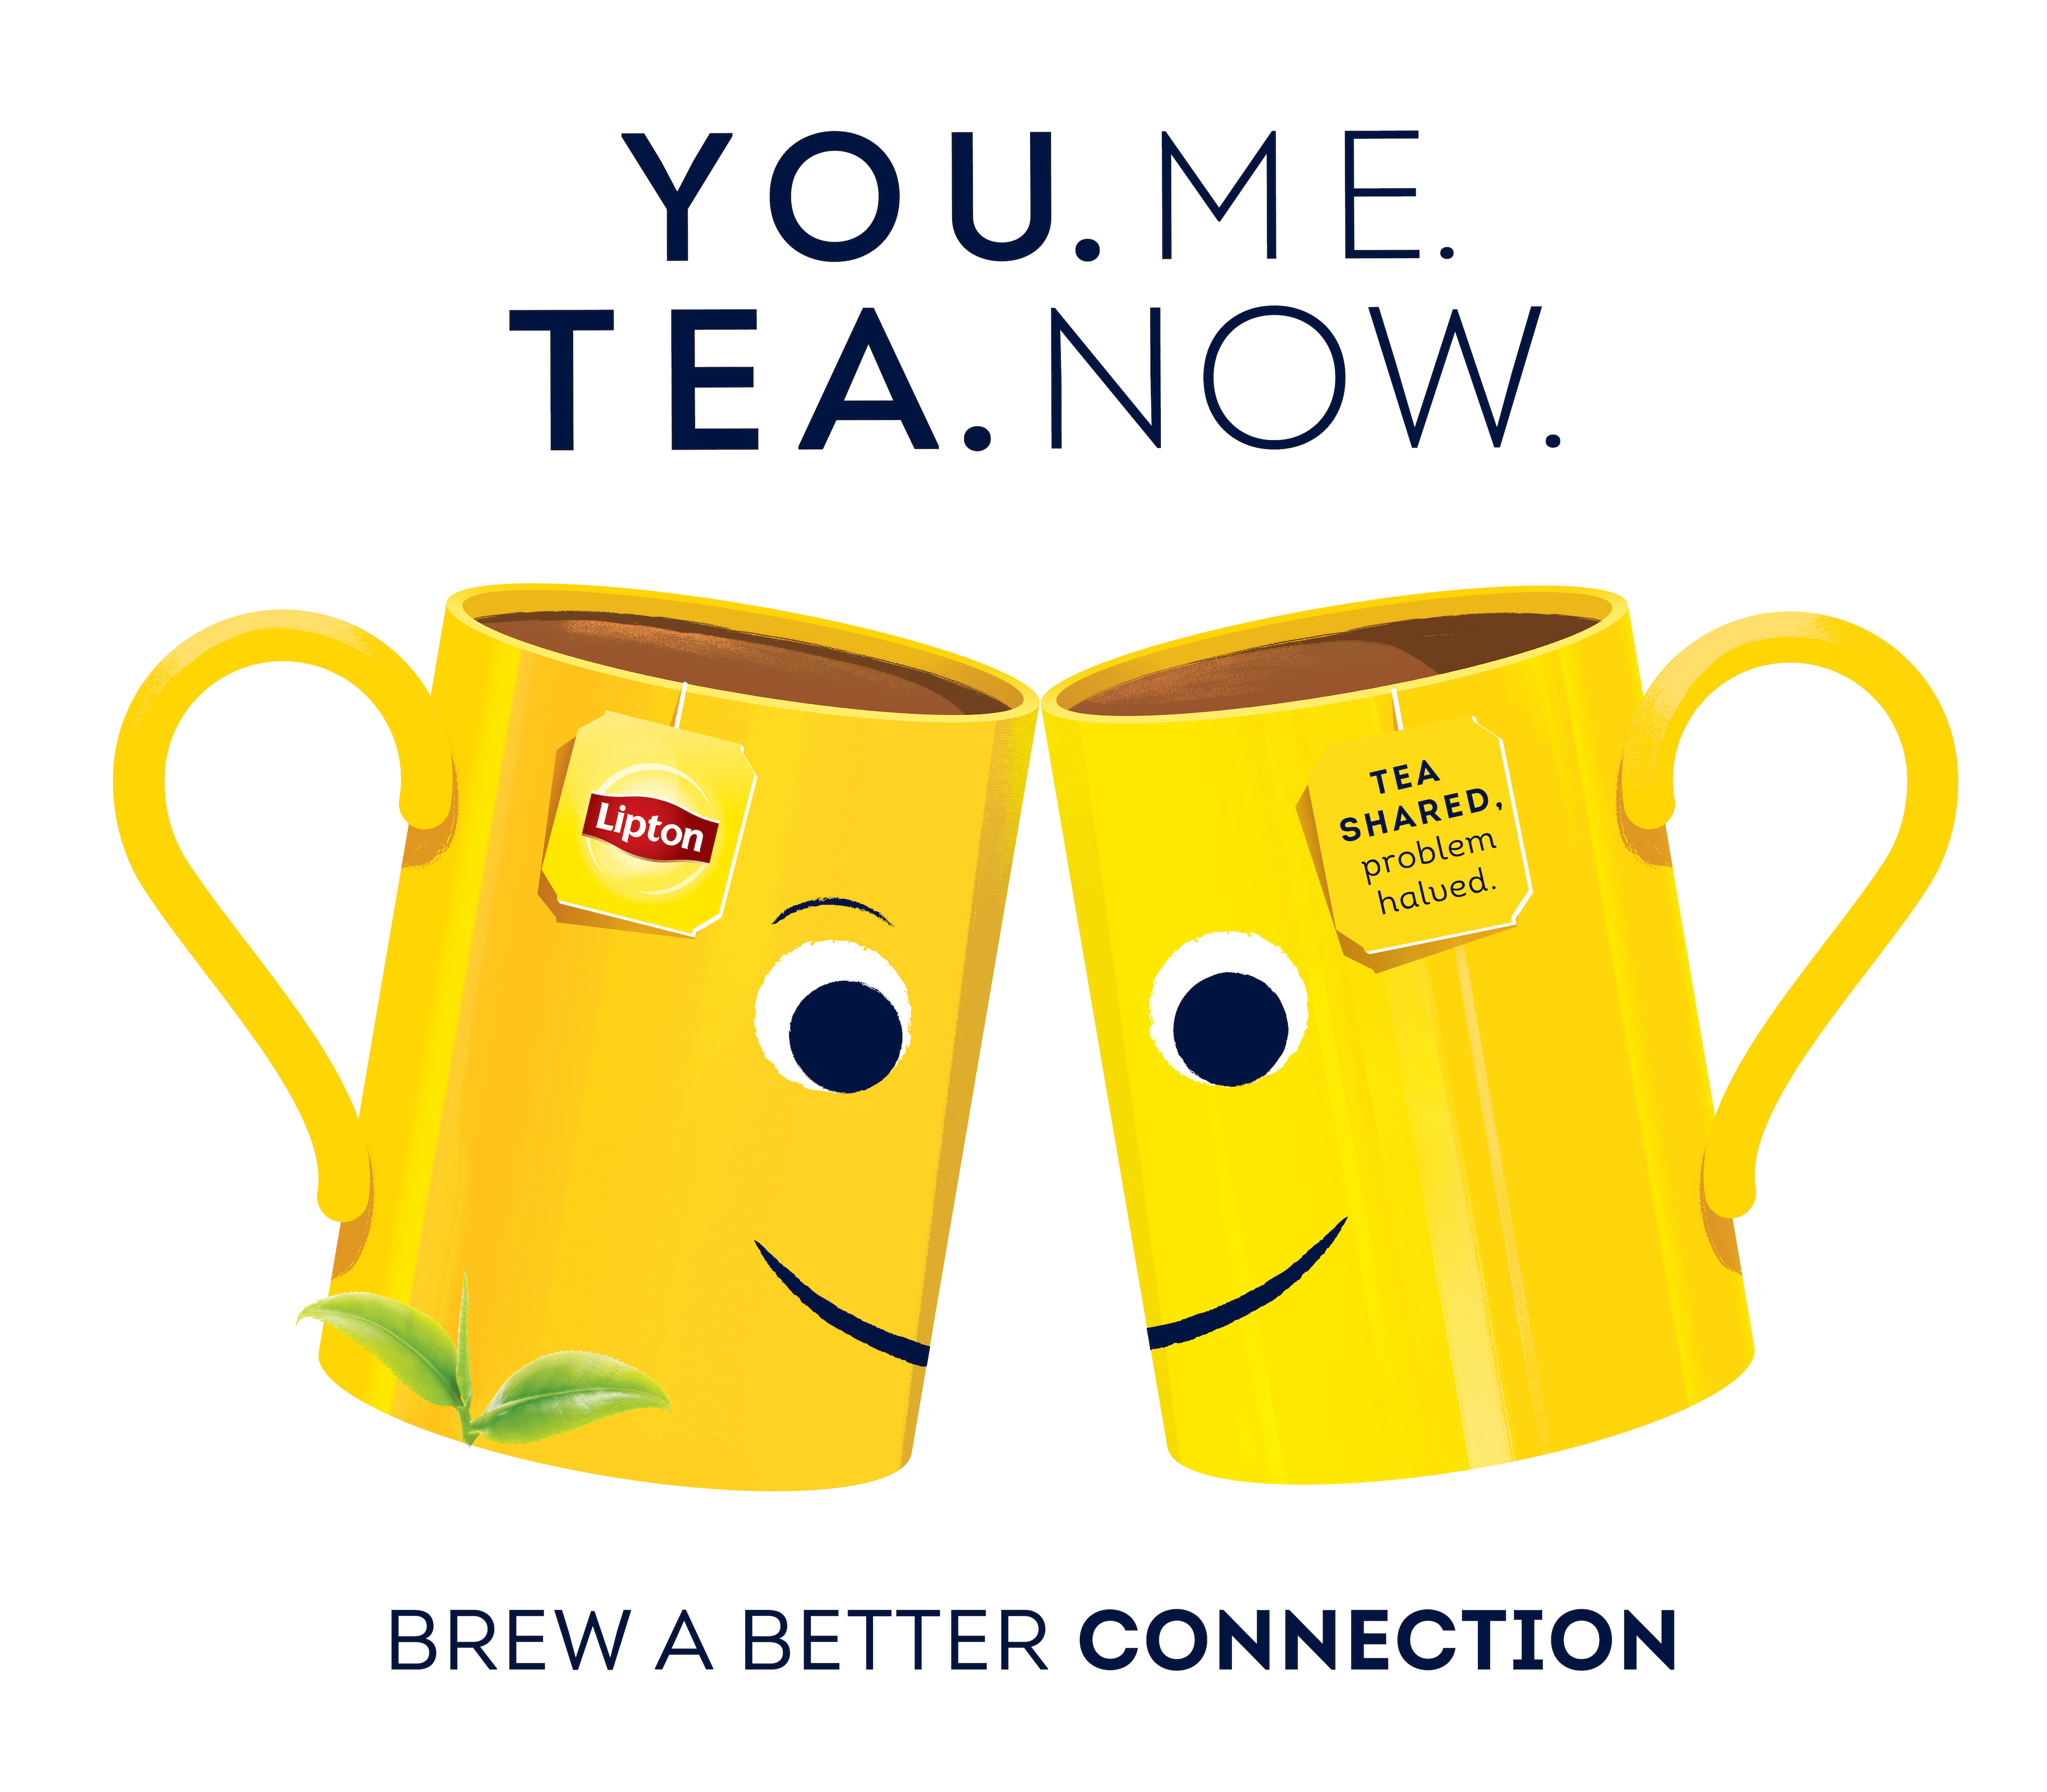 Research by Lipton finds that one in three 18-34 year olds feel lonely and reveals the barriers to genuine connections